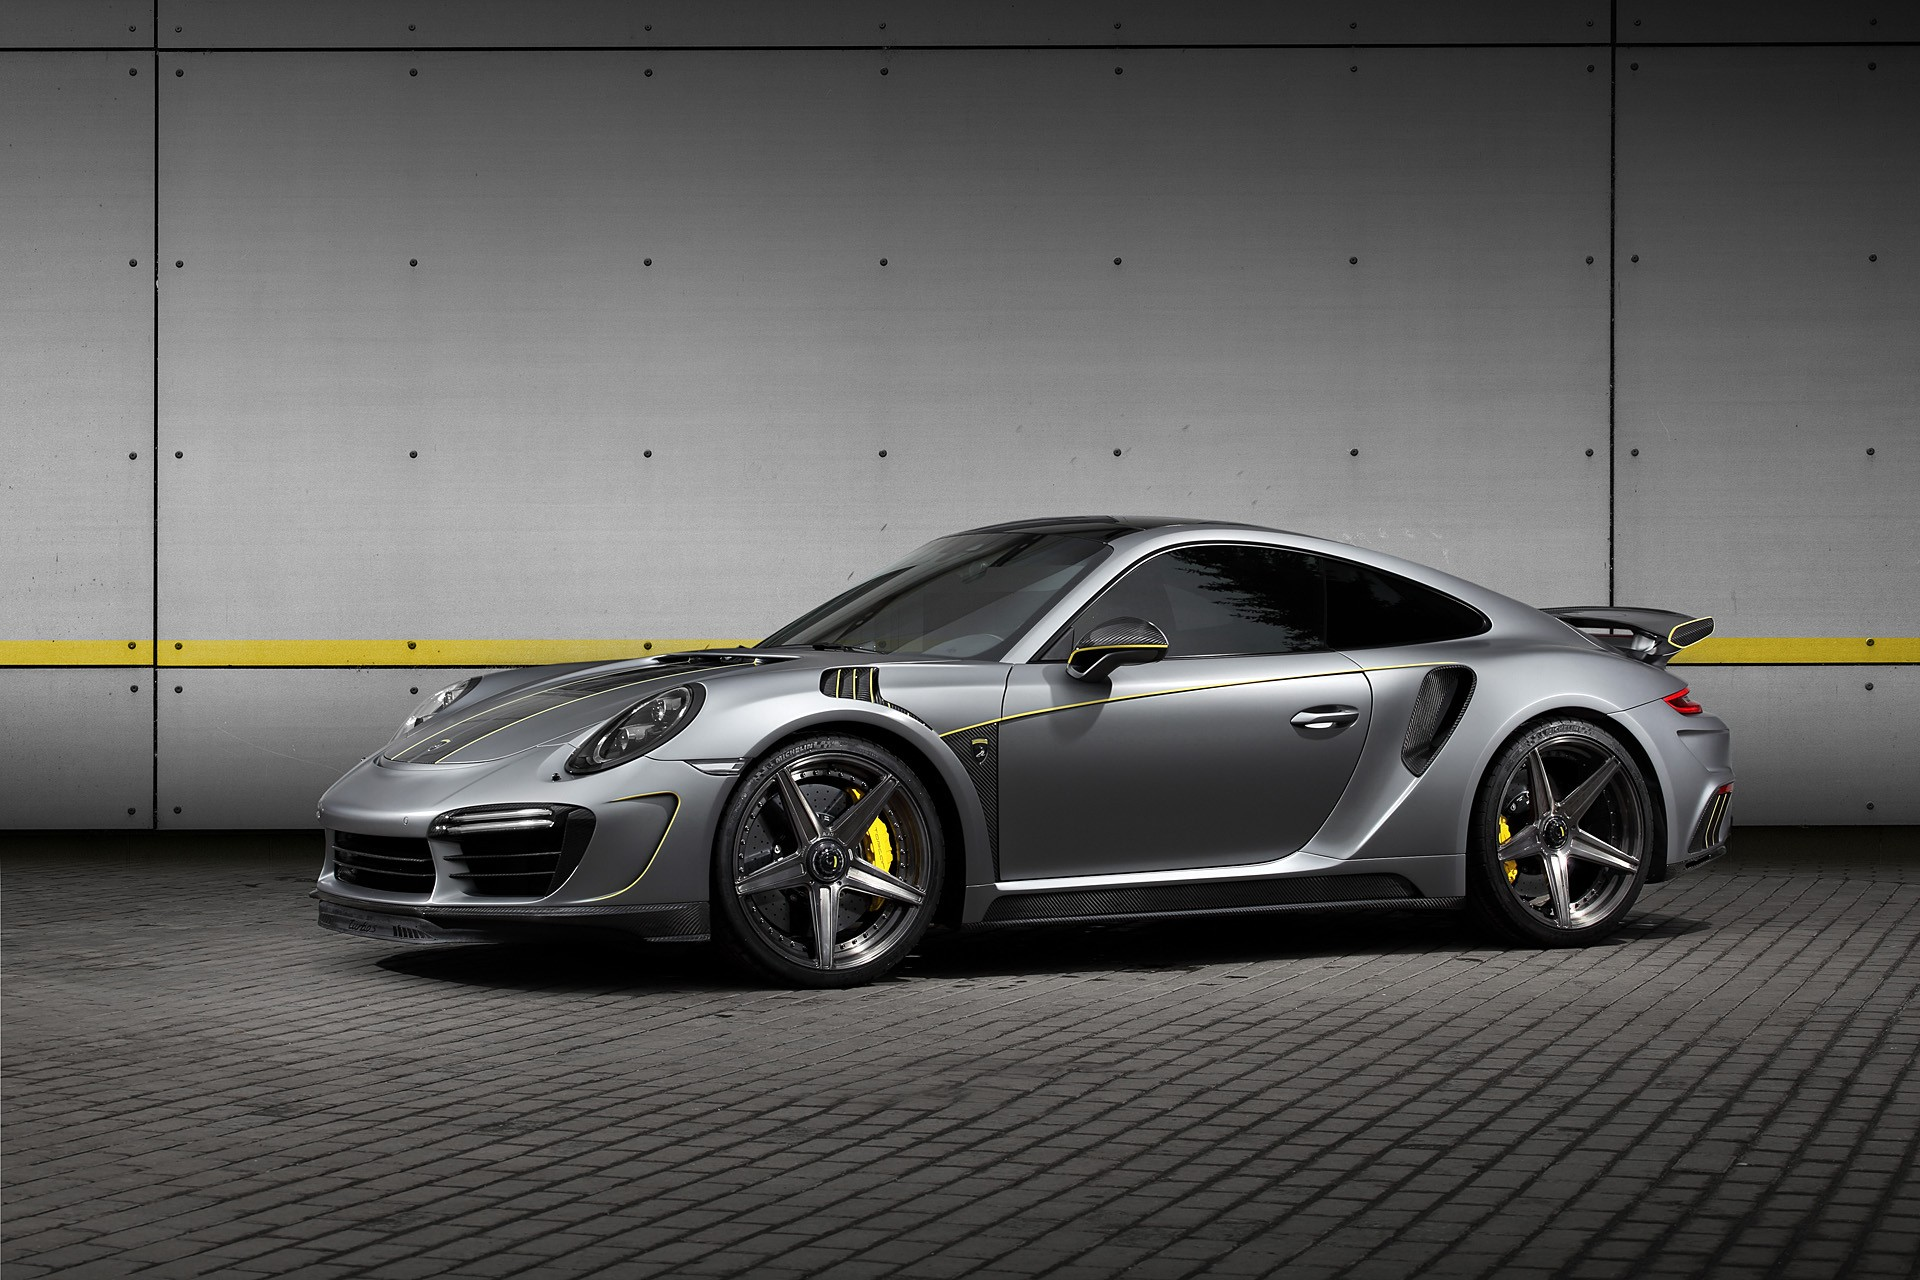 The Russian tuning atelier TopCar has issued an extensive upgrade kit for the popular Porsche 911 Turbo S sports car